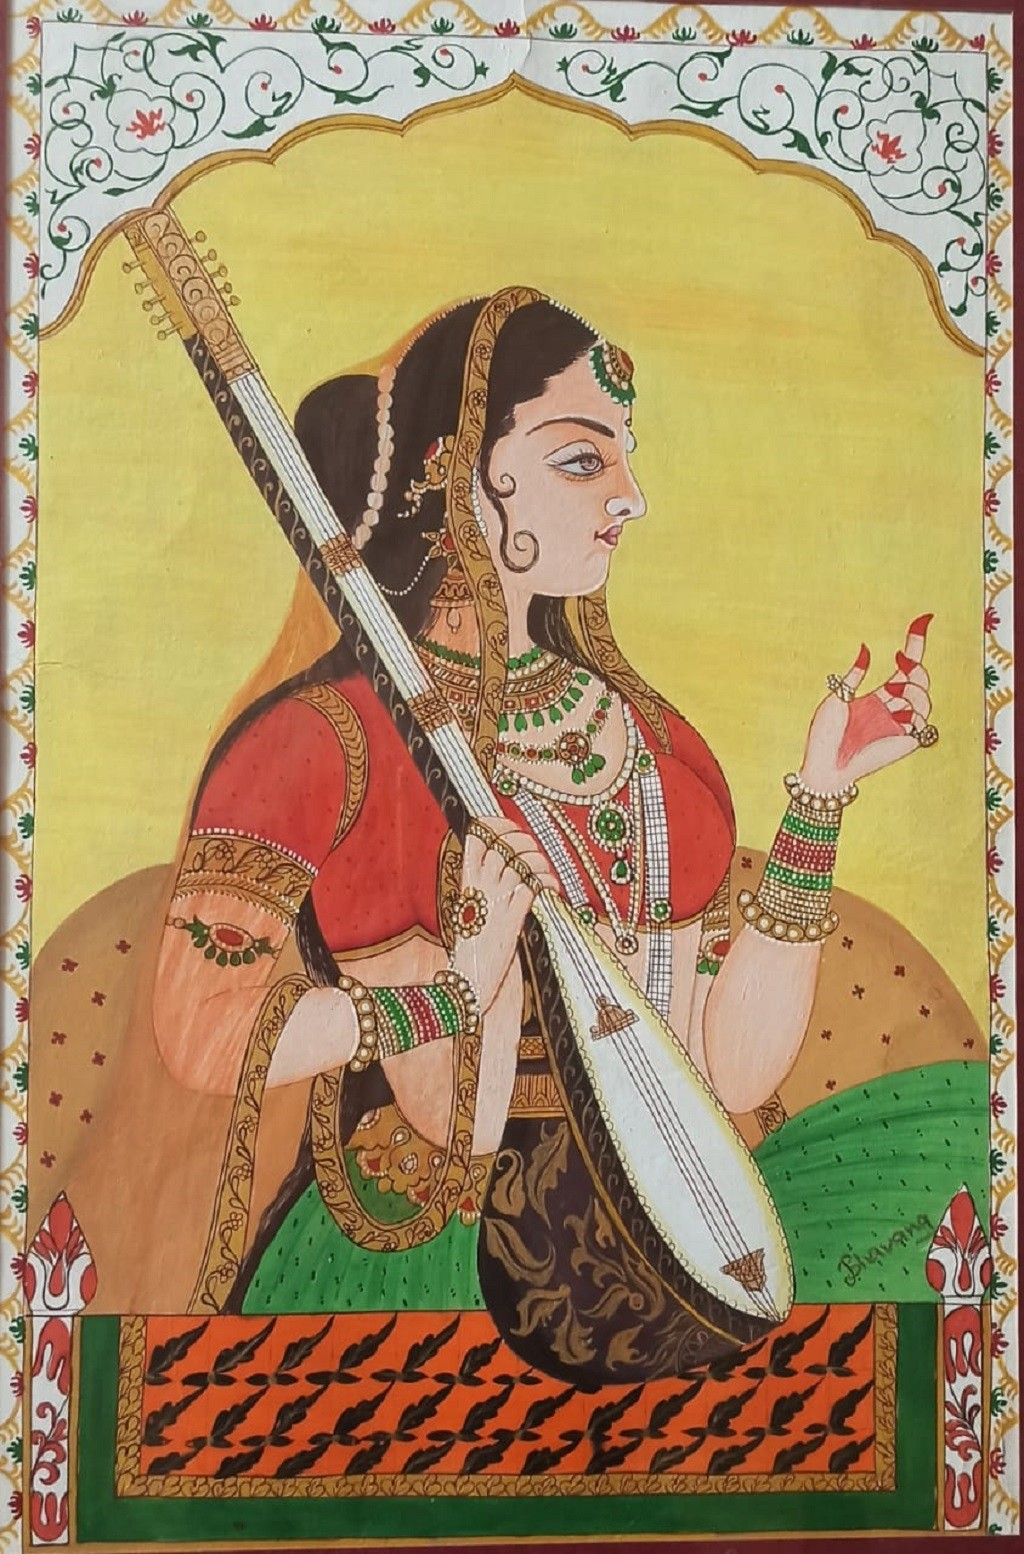 Indian Classic Miniature : Lady With Sitar Digital Print by Bhavana Saxena,Traditional